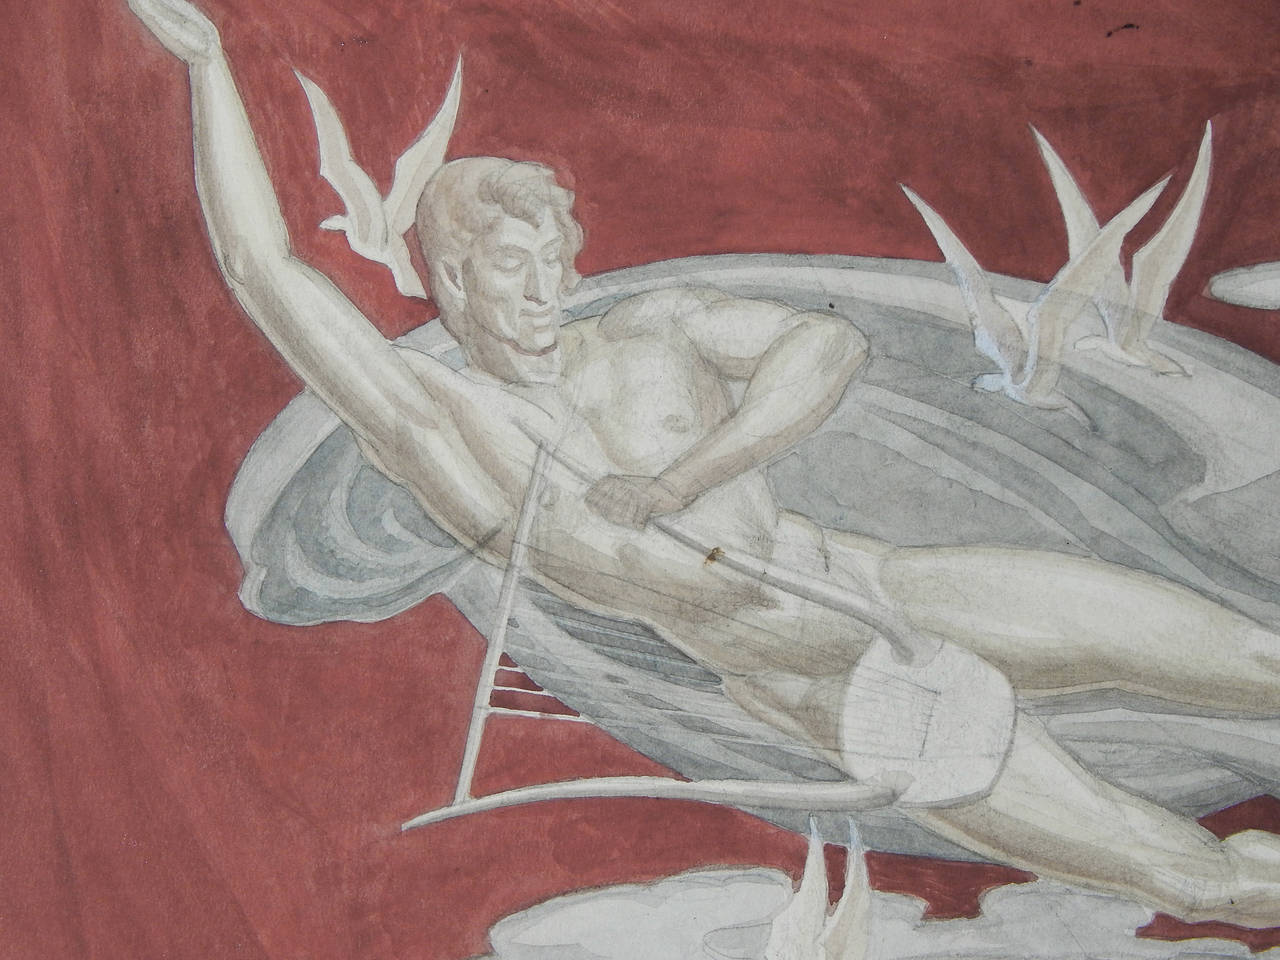 Painted by Dunbar Beck, one of America's finest muralists in the 1930s and 1940s, this classic example of Art Deco stylized allegorical painting served as a study for a series of murals that Beck painted for the 1939-1940 New York World's Fair. Beck